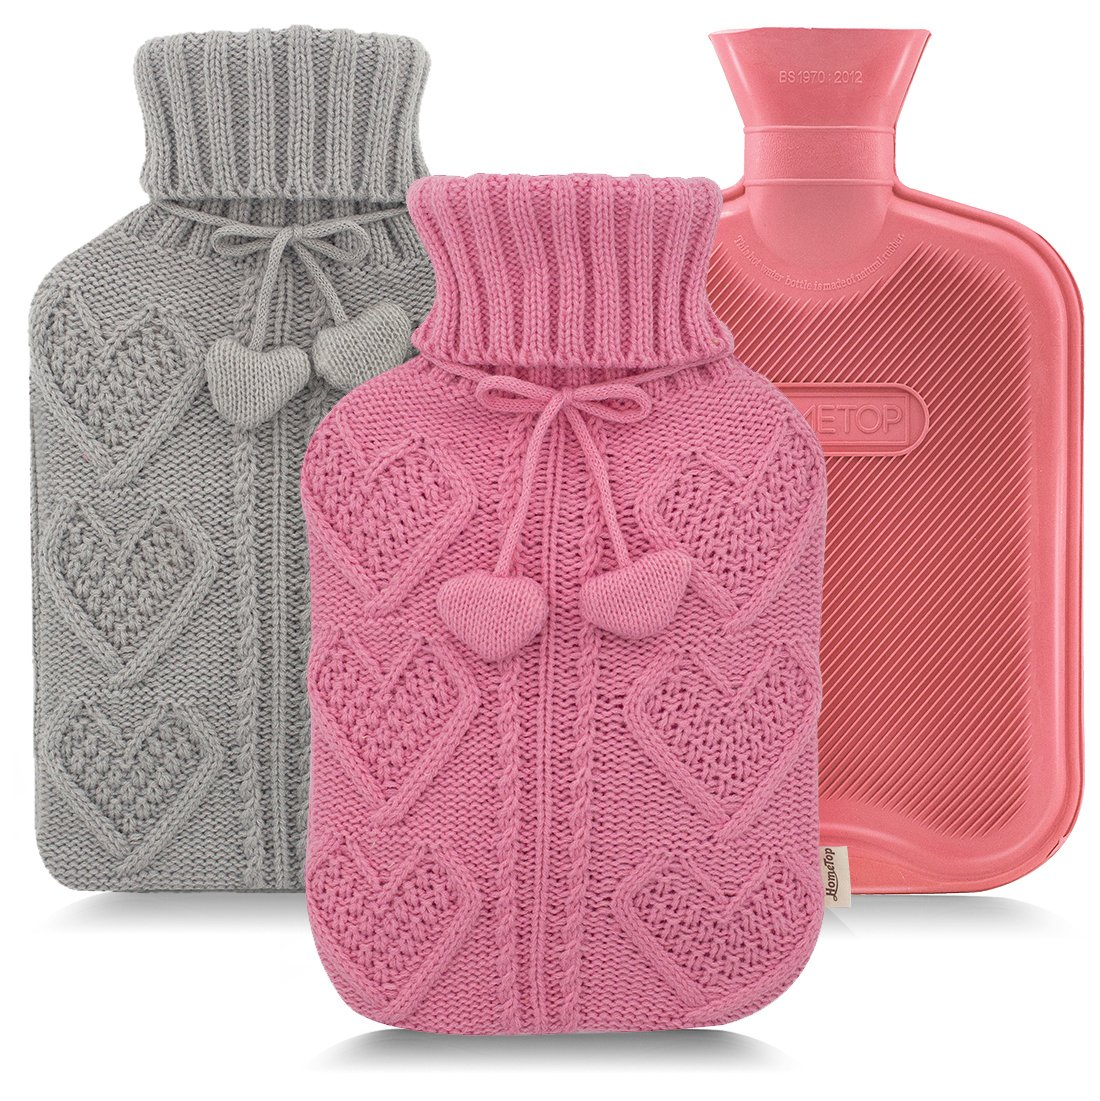 Premium Classic Rubber Hot Water Bottle and Heart Knit Cover (Gray + Pink)